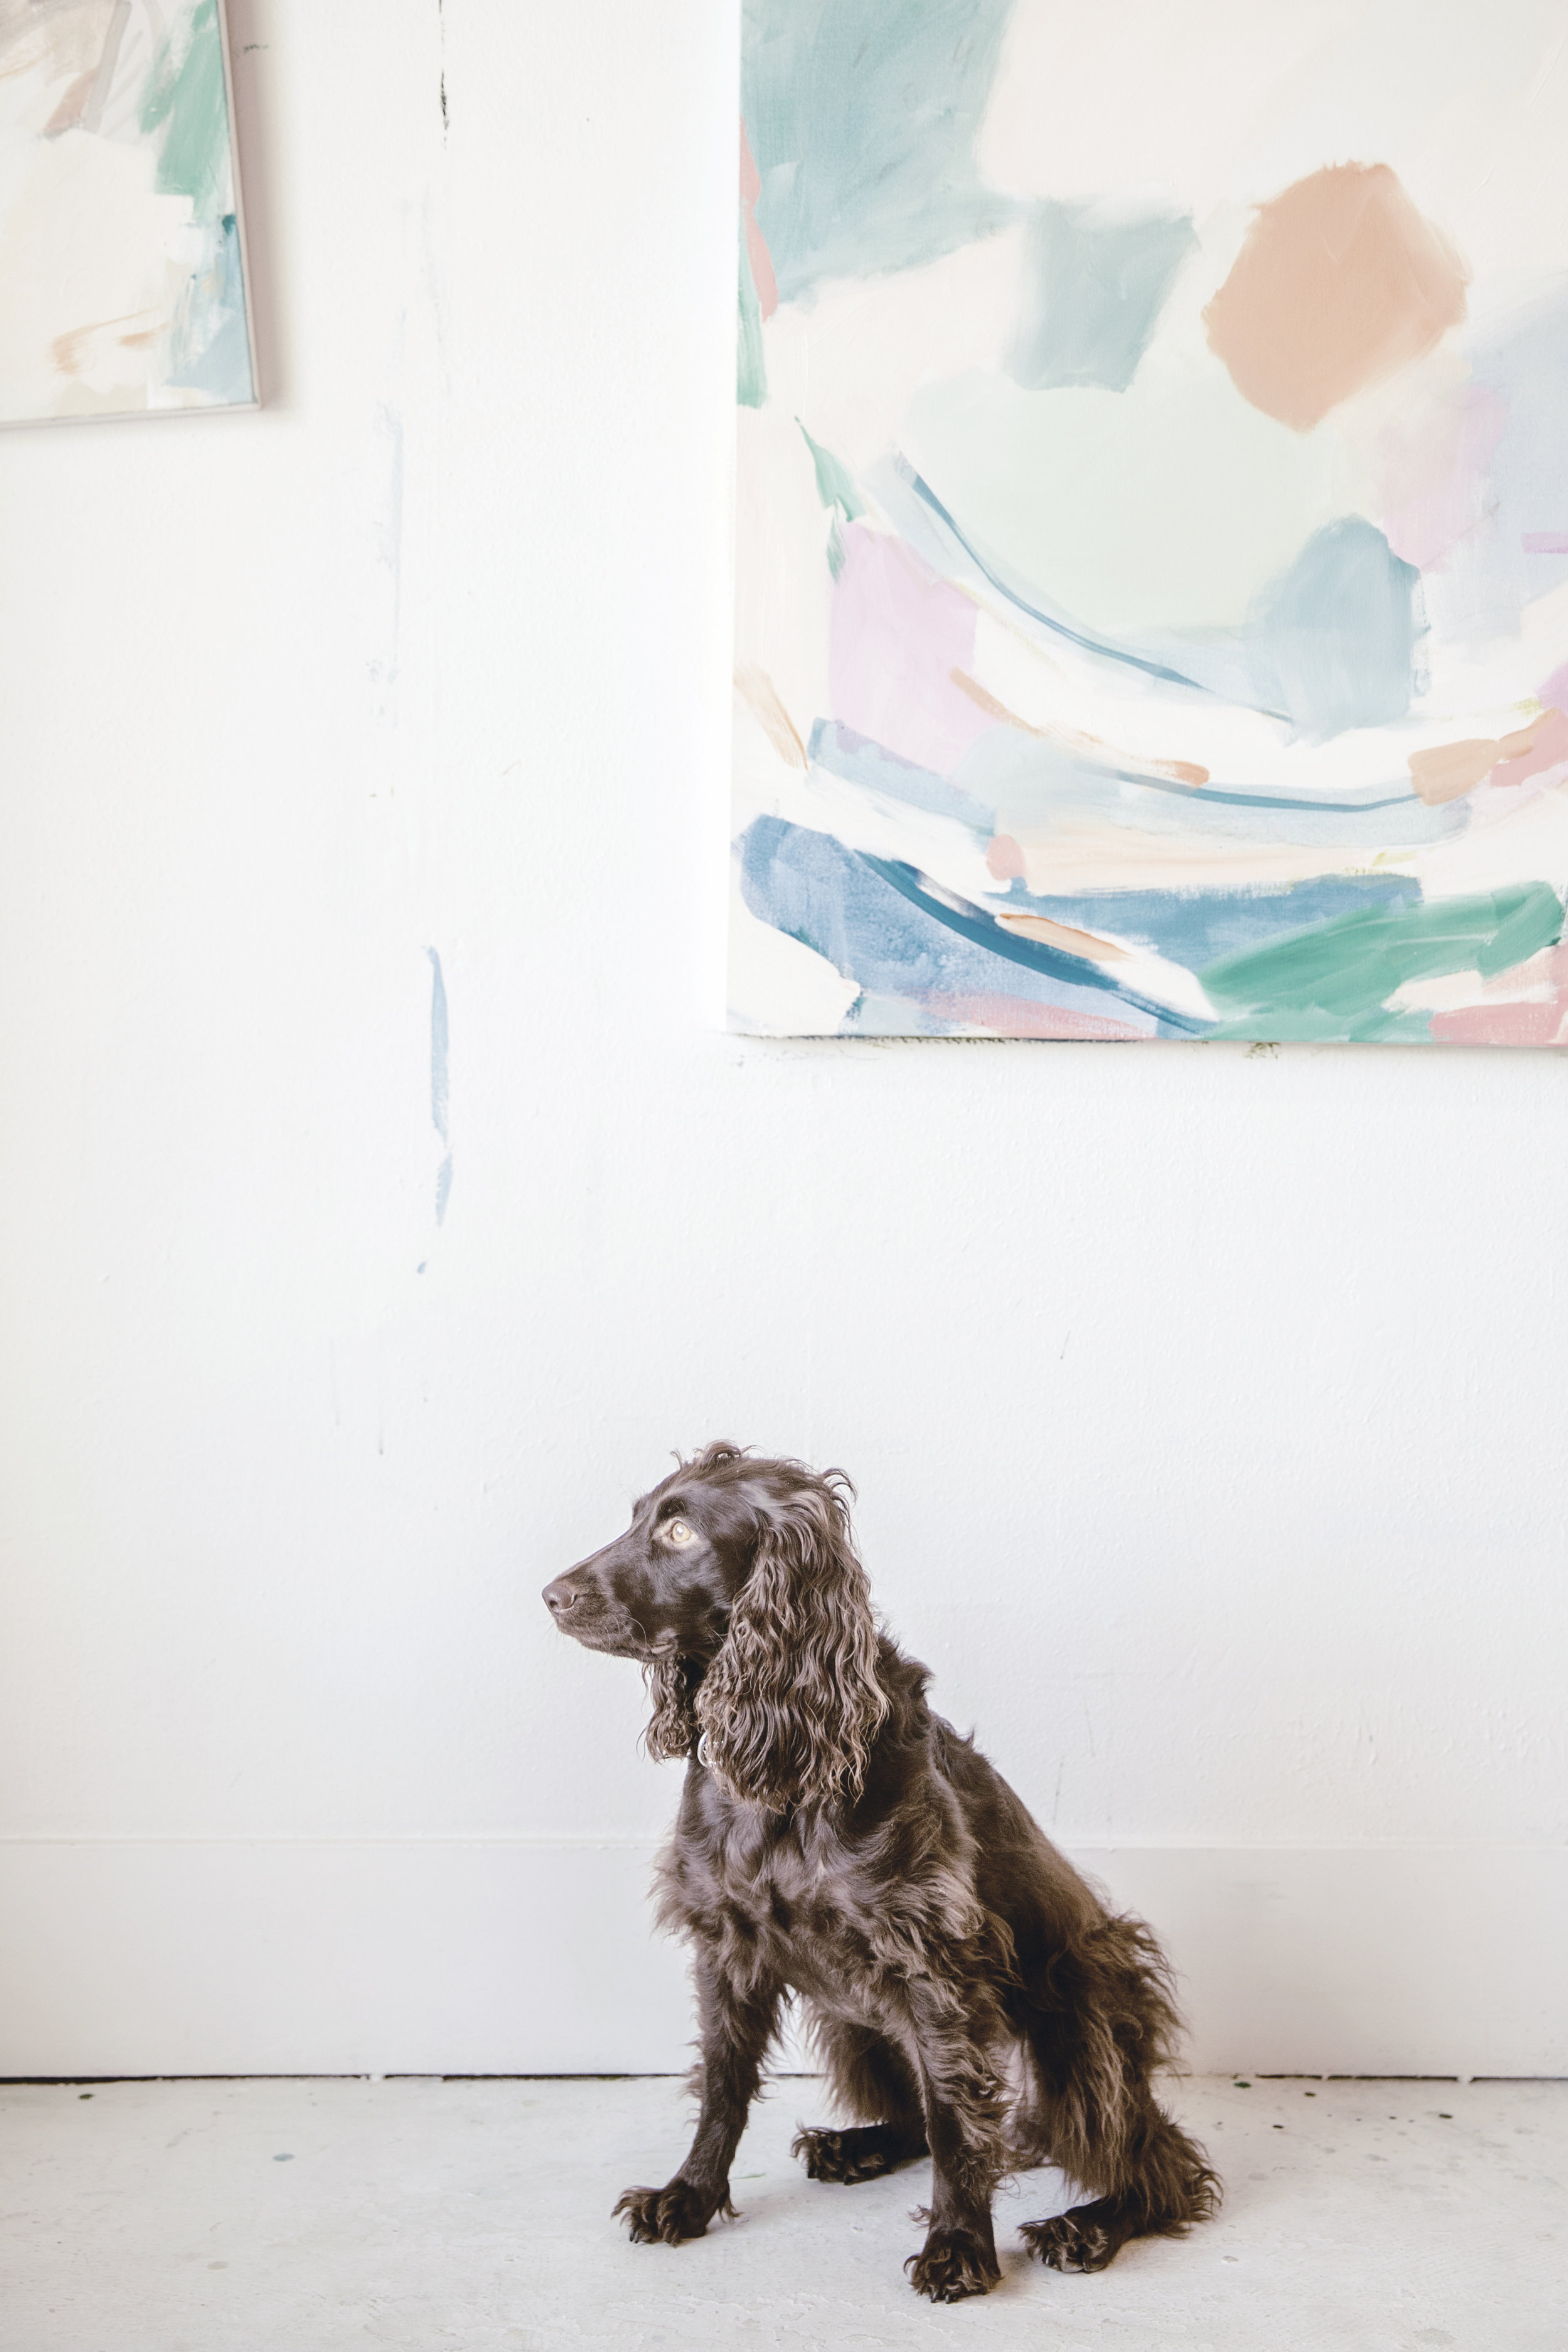 Her dog and studio companion, Birdie.